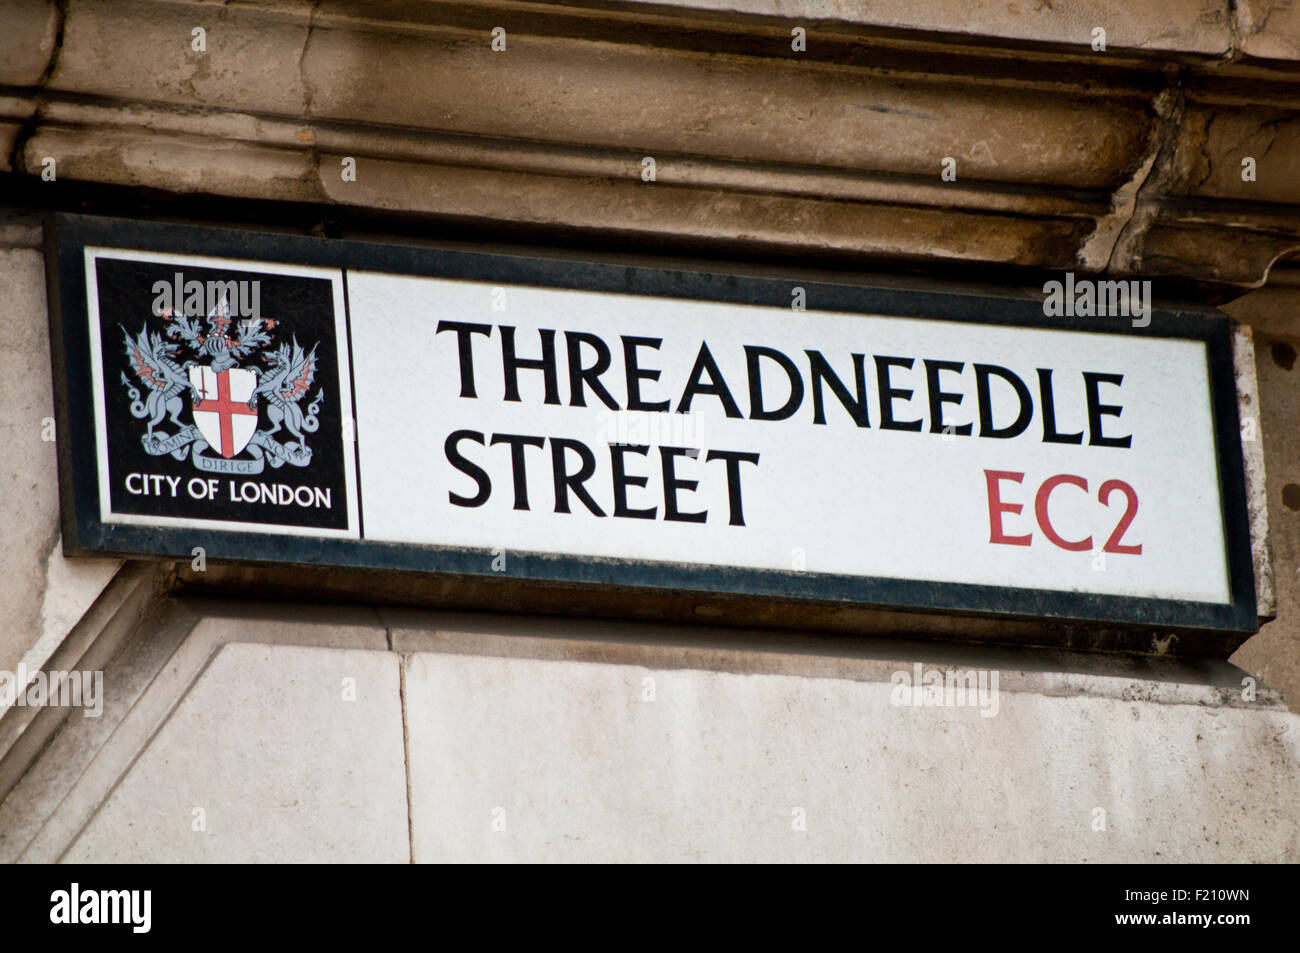 Street sign for Threadneedle Street, City of London England Great Britain - Stock Image